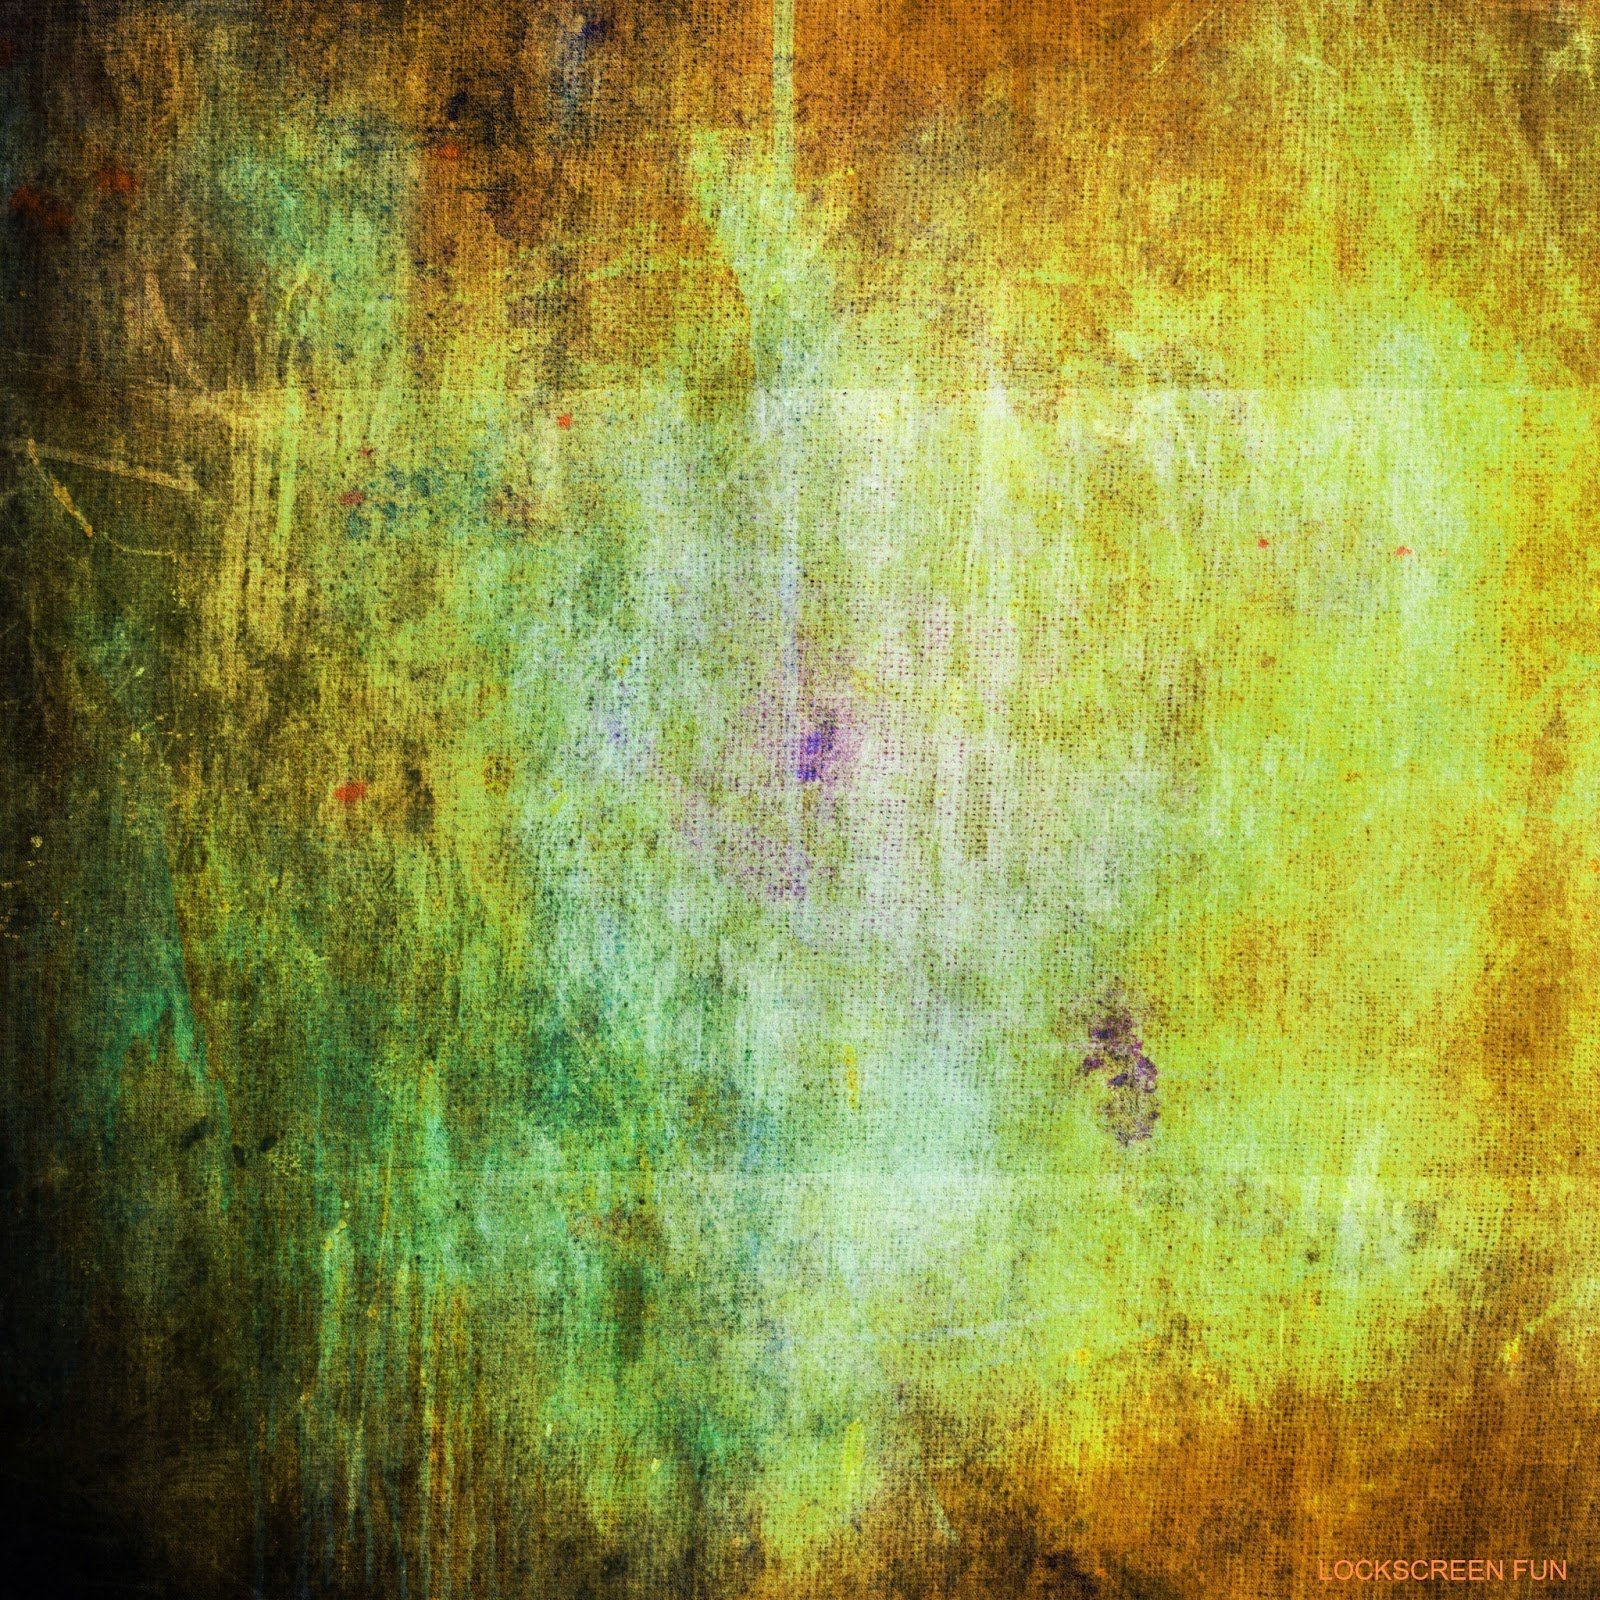 grunge wallpaper is for ipad mini and ipad mini2 devices 1600x1600